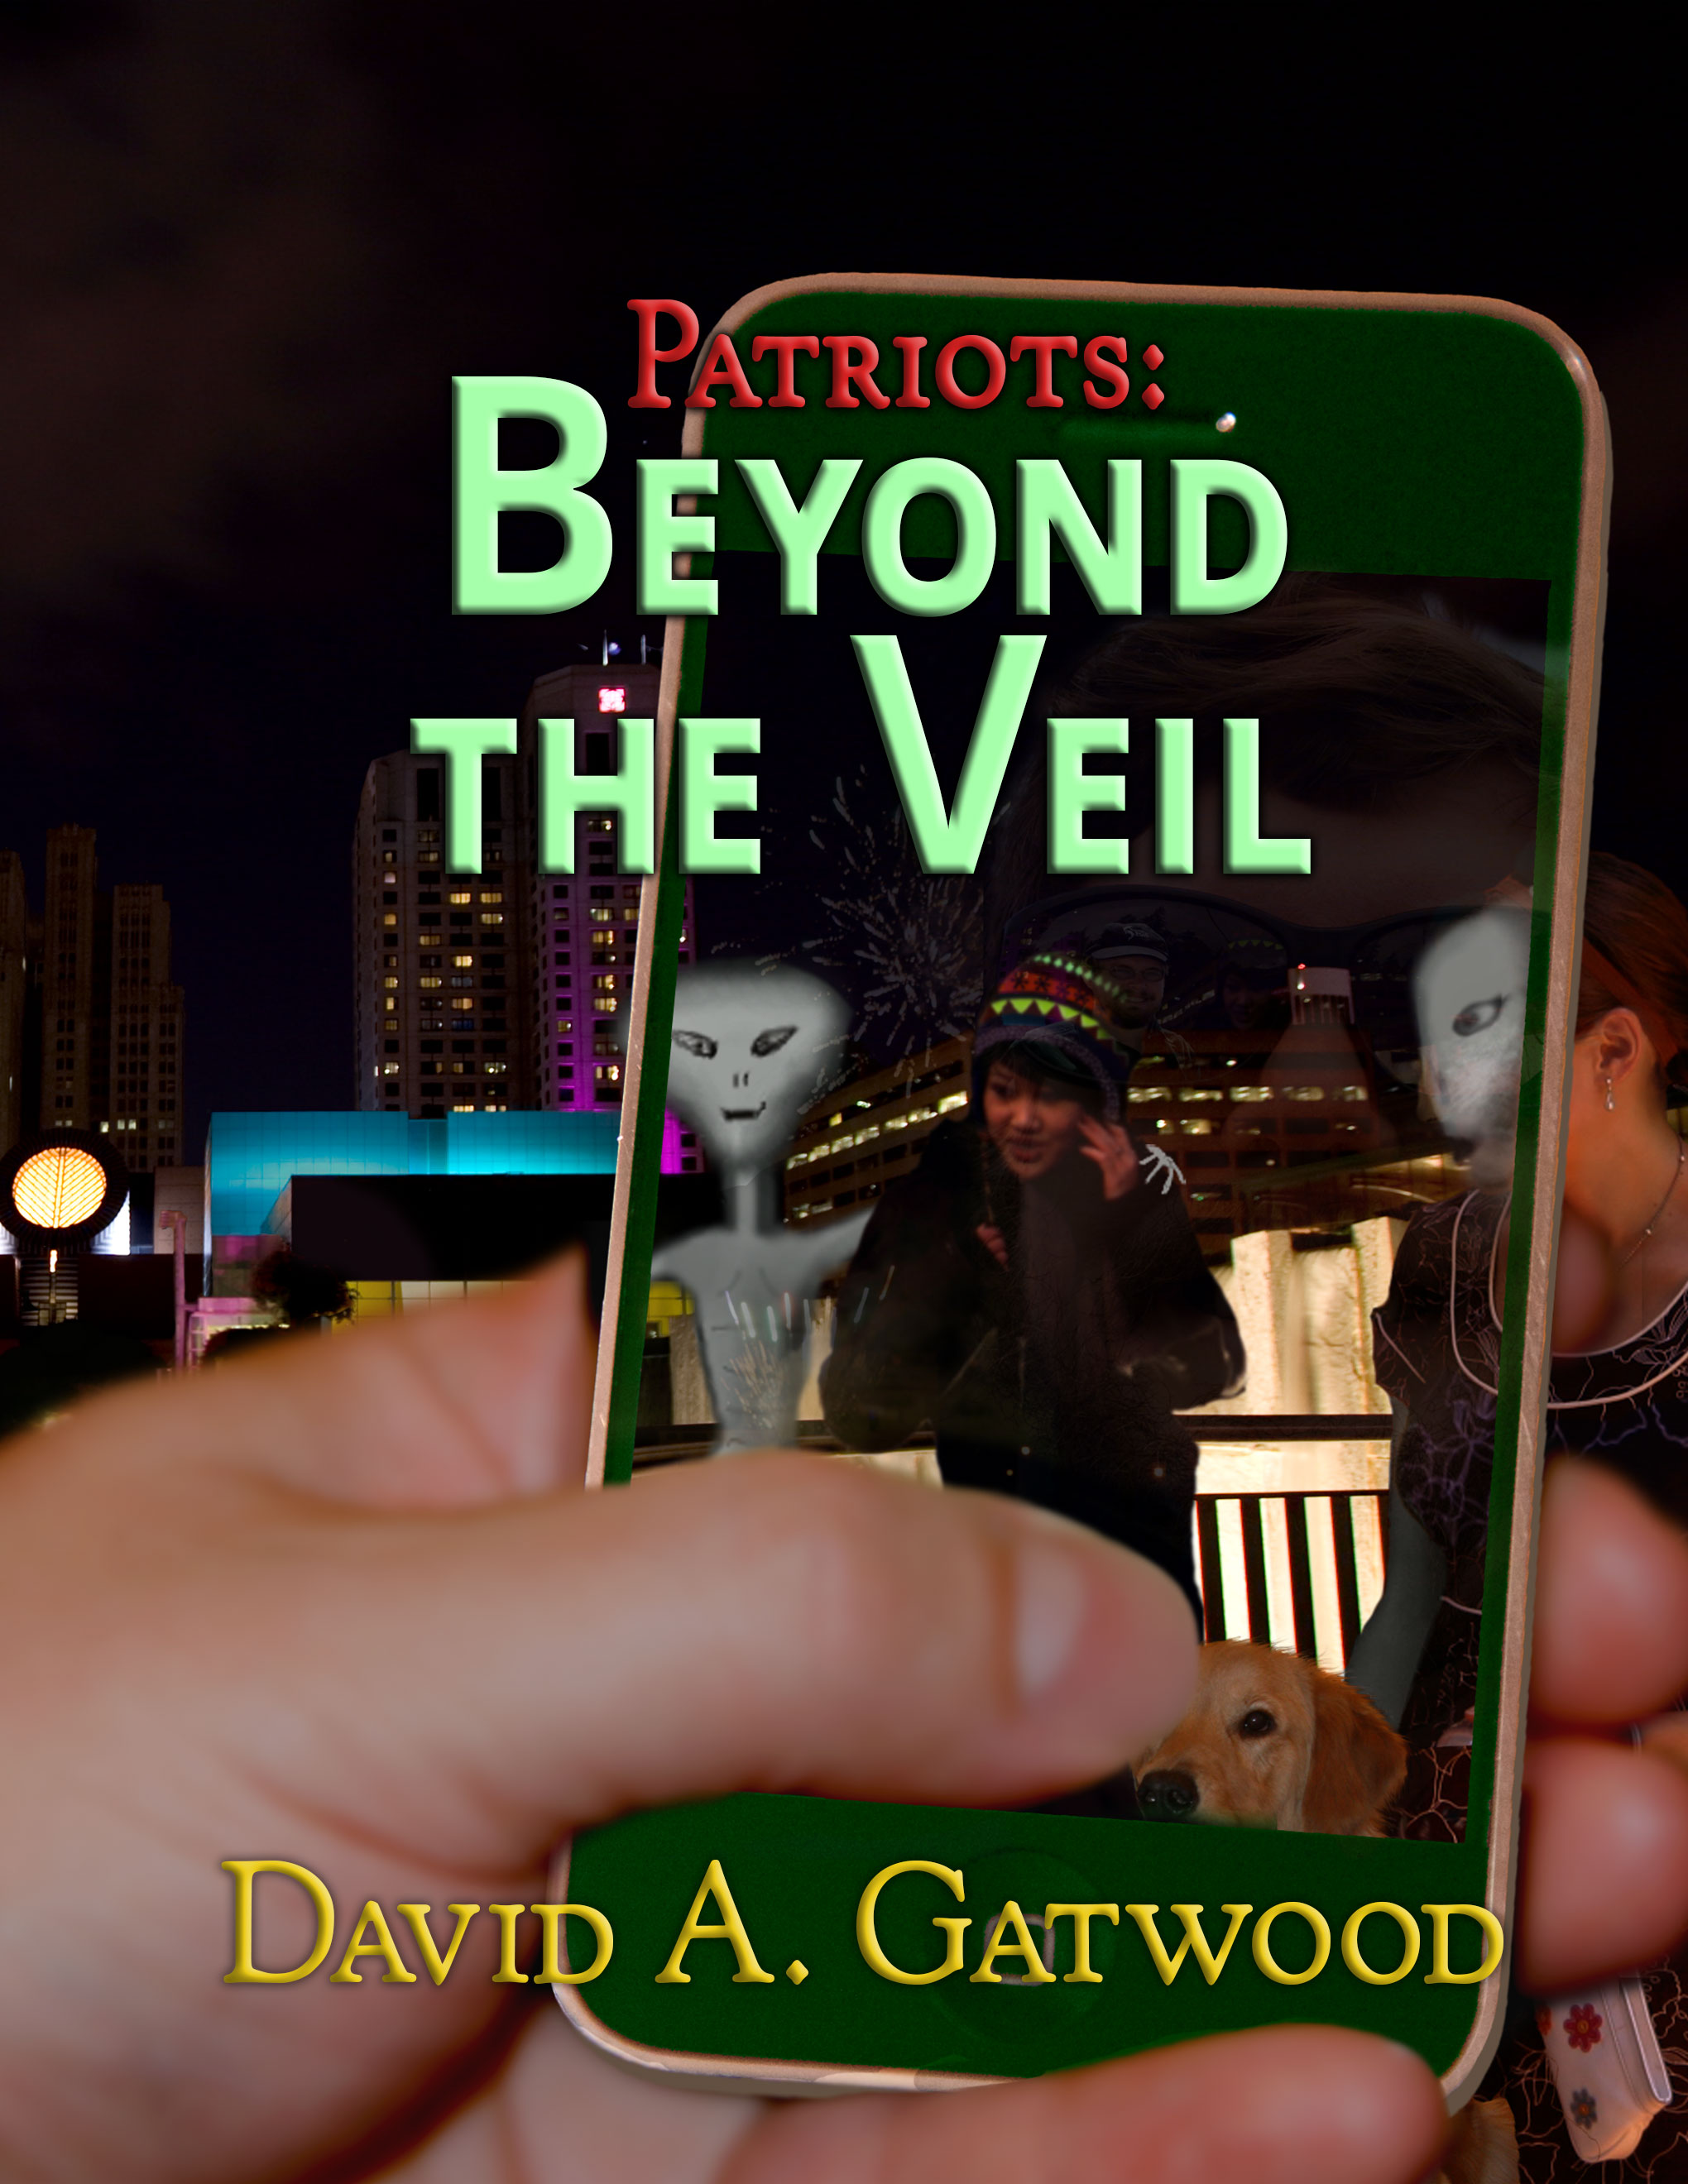 Cover art image for Beyond the Veil